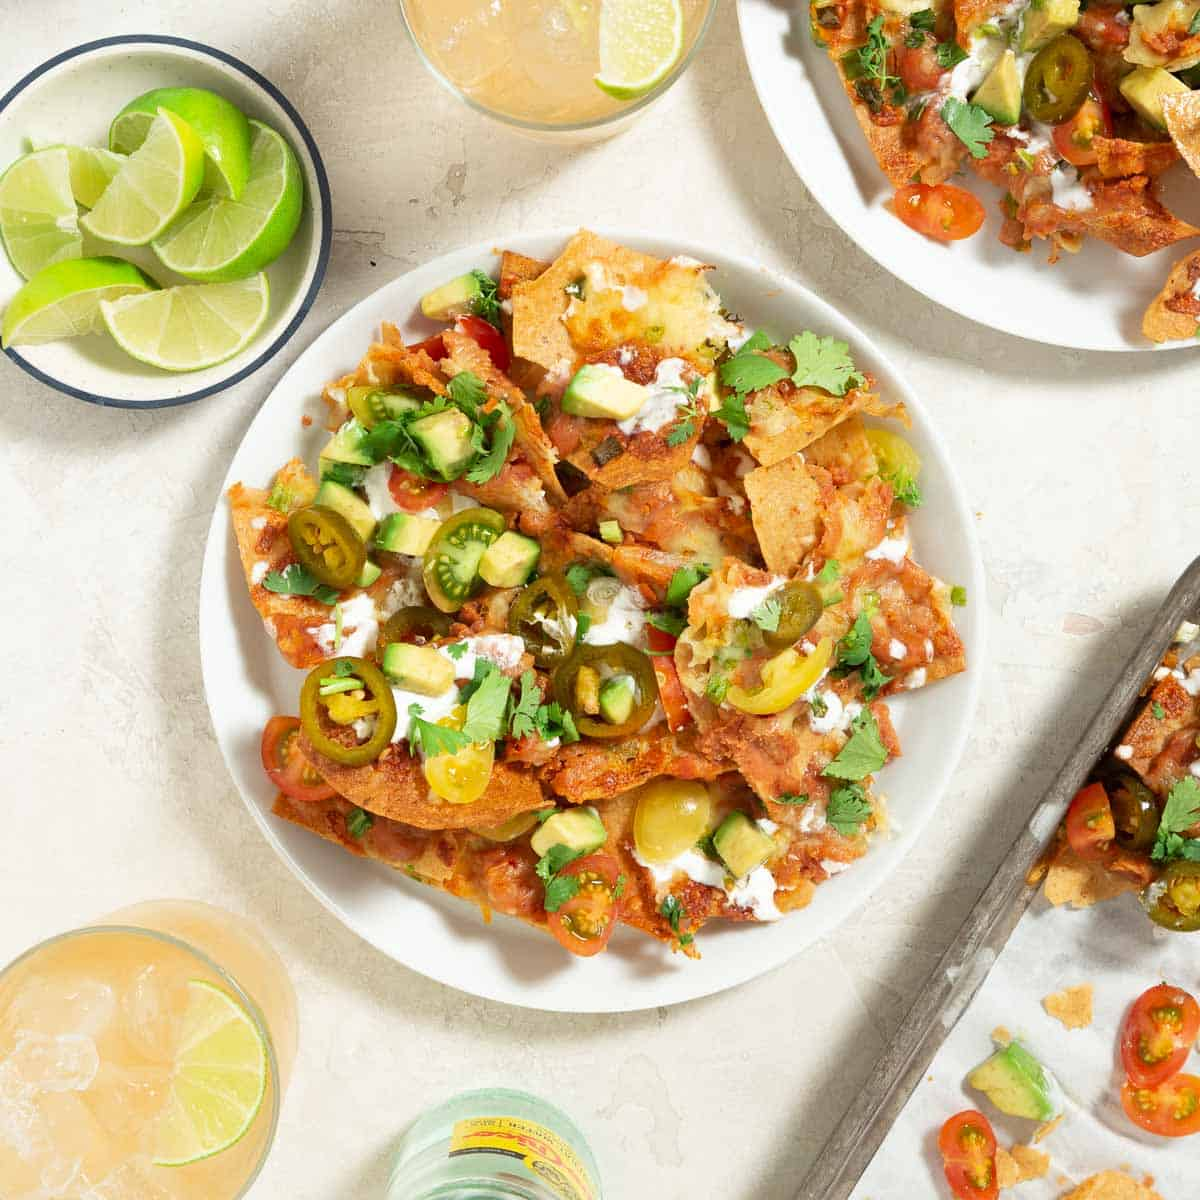 White plate with a serving of vegetarian nachos. Lime wedges and cocktails on the side.